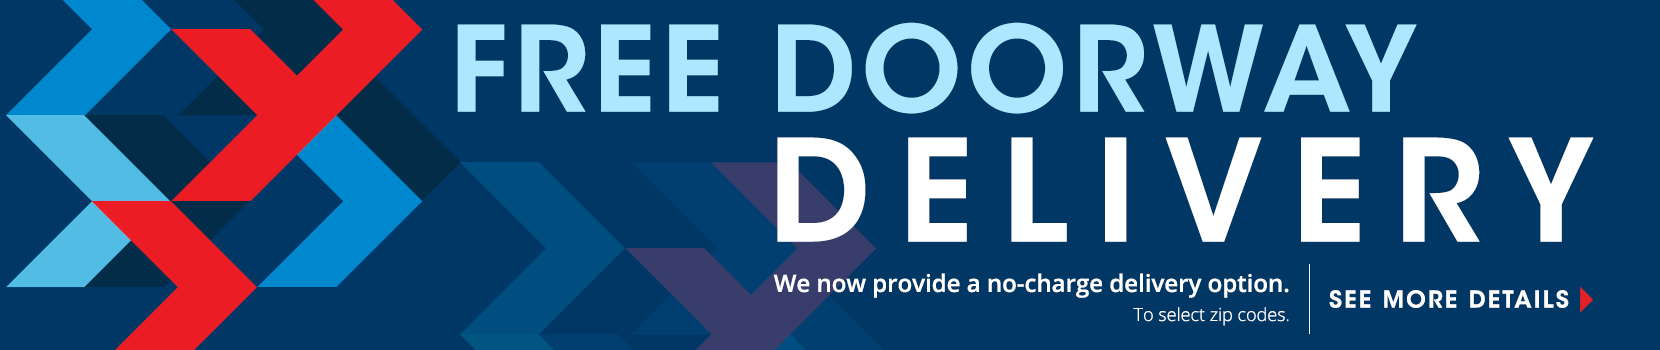 free doorway delivery. we now provide a no charge delivery option to select zip codes. see details. shop now